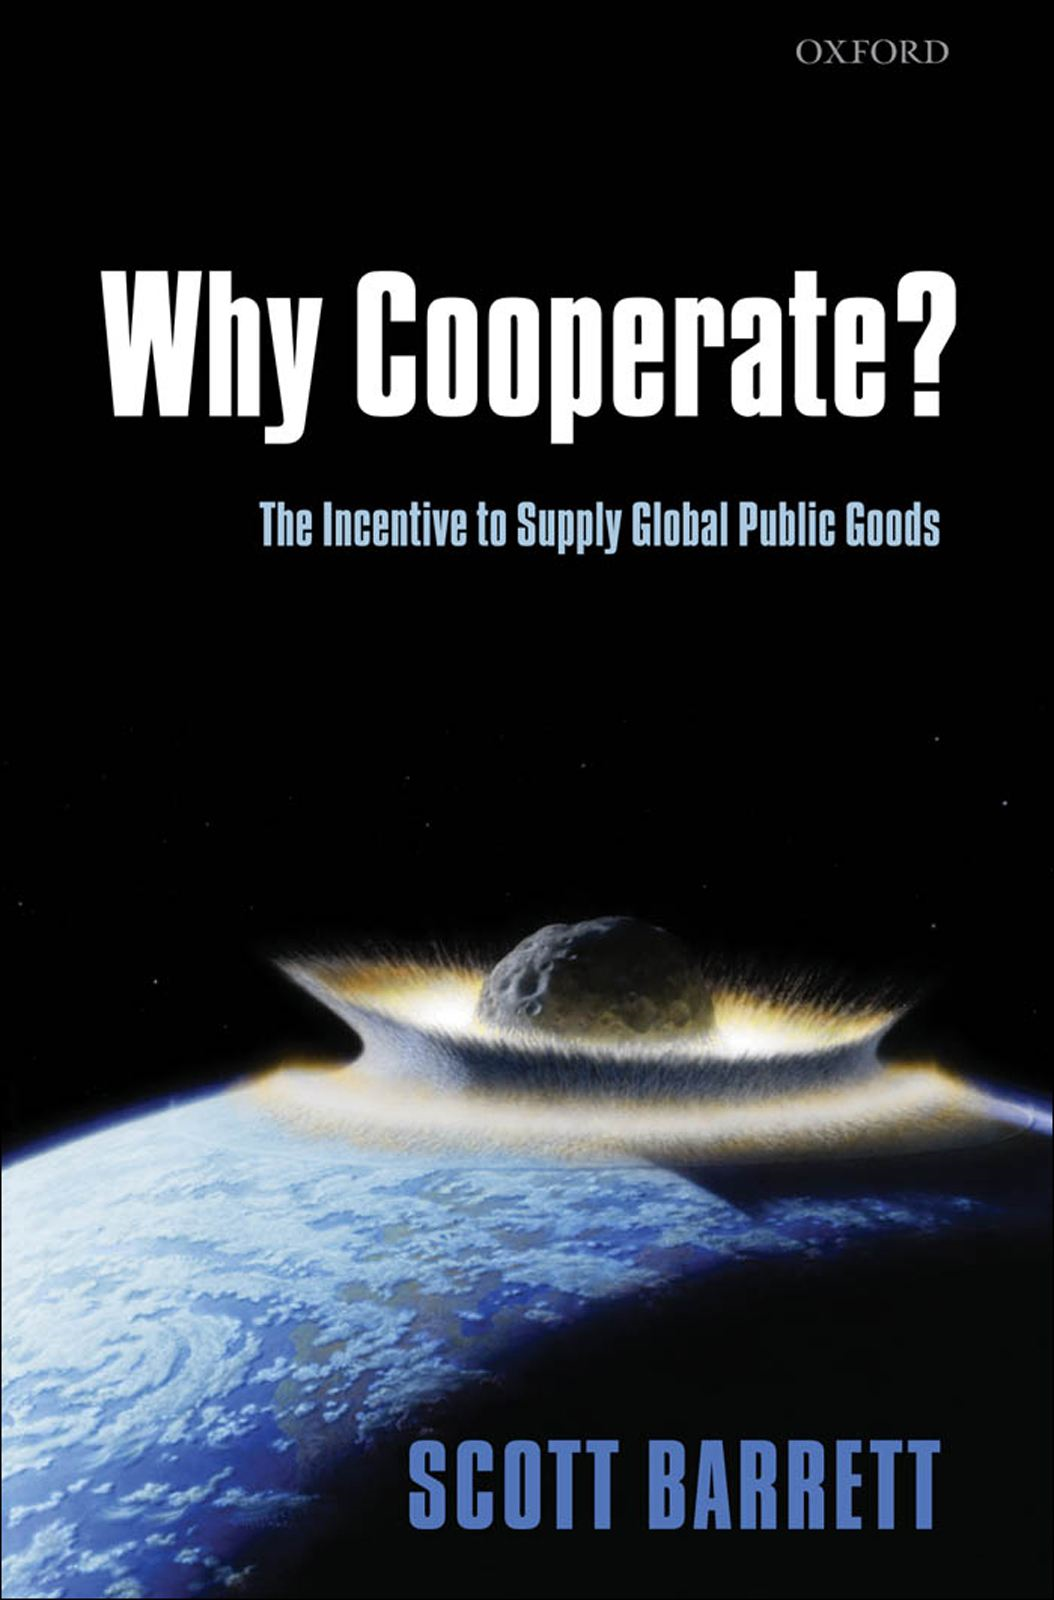 Why Cooperate? : The Incentive to Supply Global Public Goods